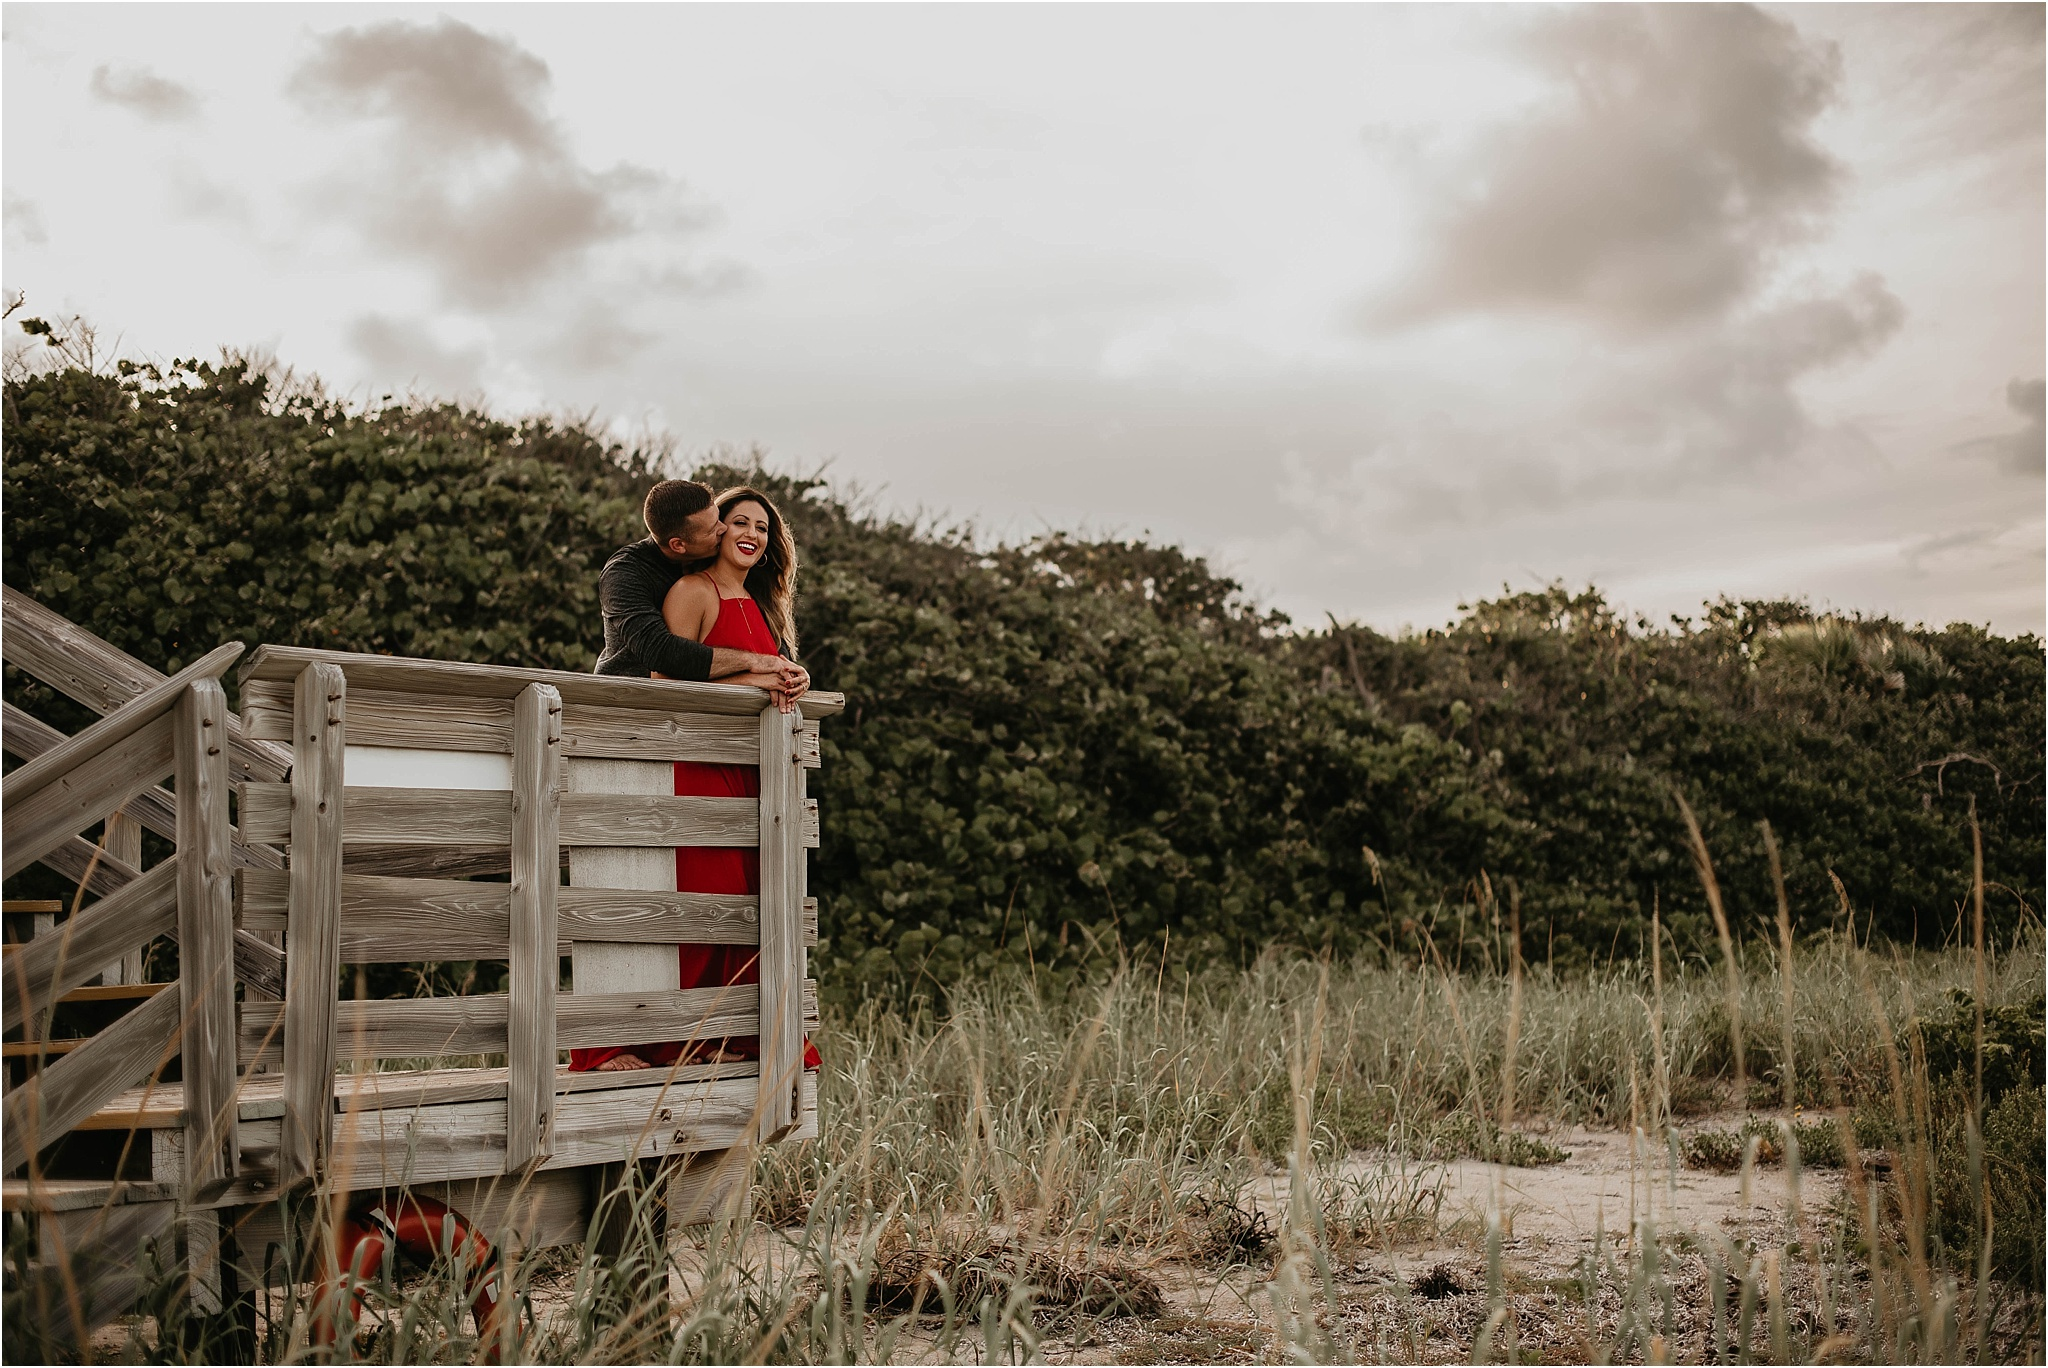 JohnDMacArthur-Beach-State-Park-engagement-photographer_0013.jpg